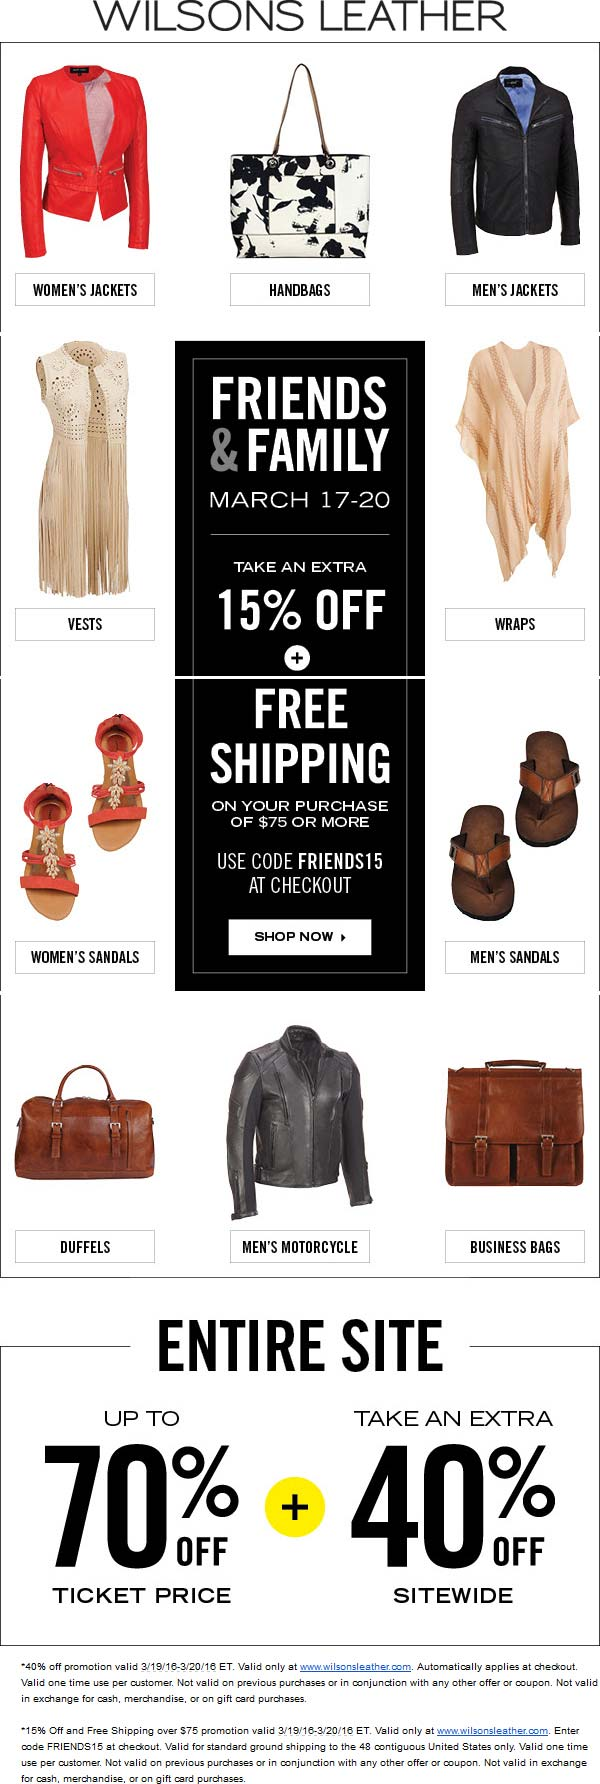 Wilsons Leather Coupon February 2017 15% off & more at Wilsons Leather, or 40%+ online via promo code FRIENDS15